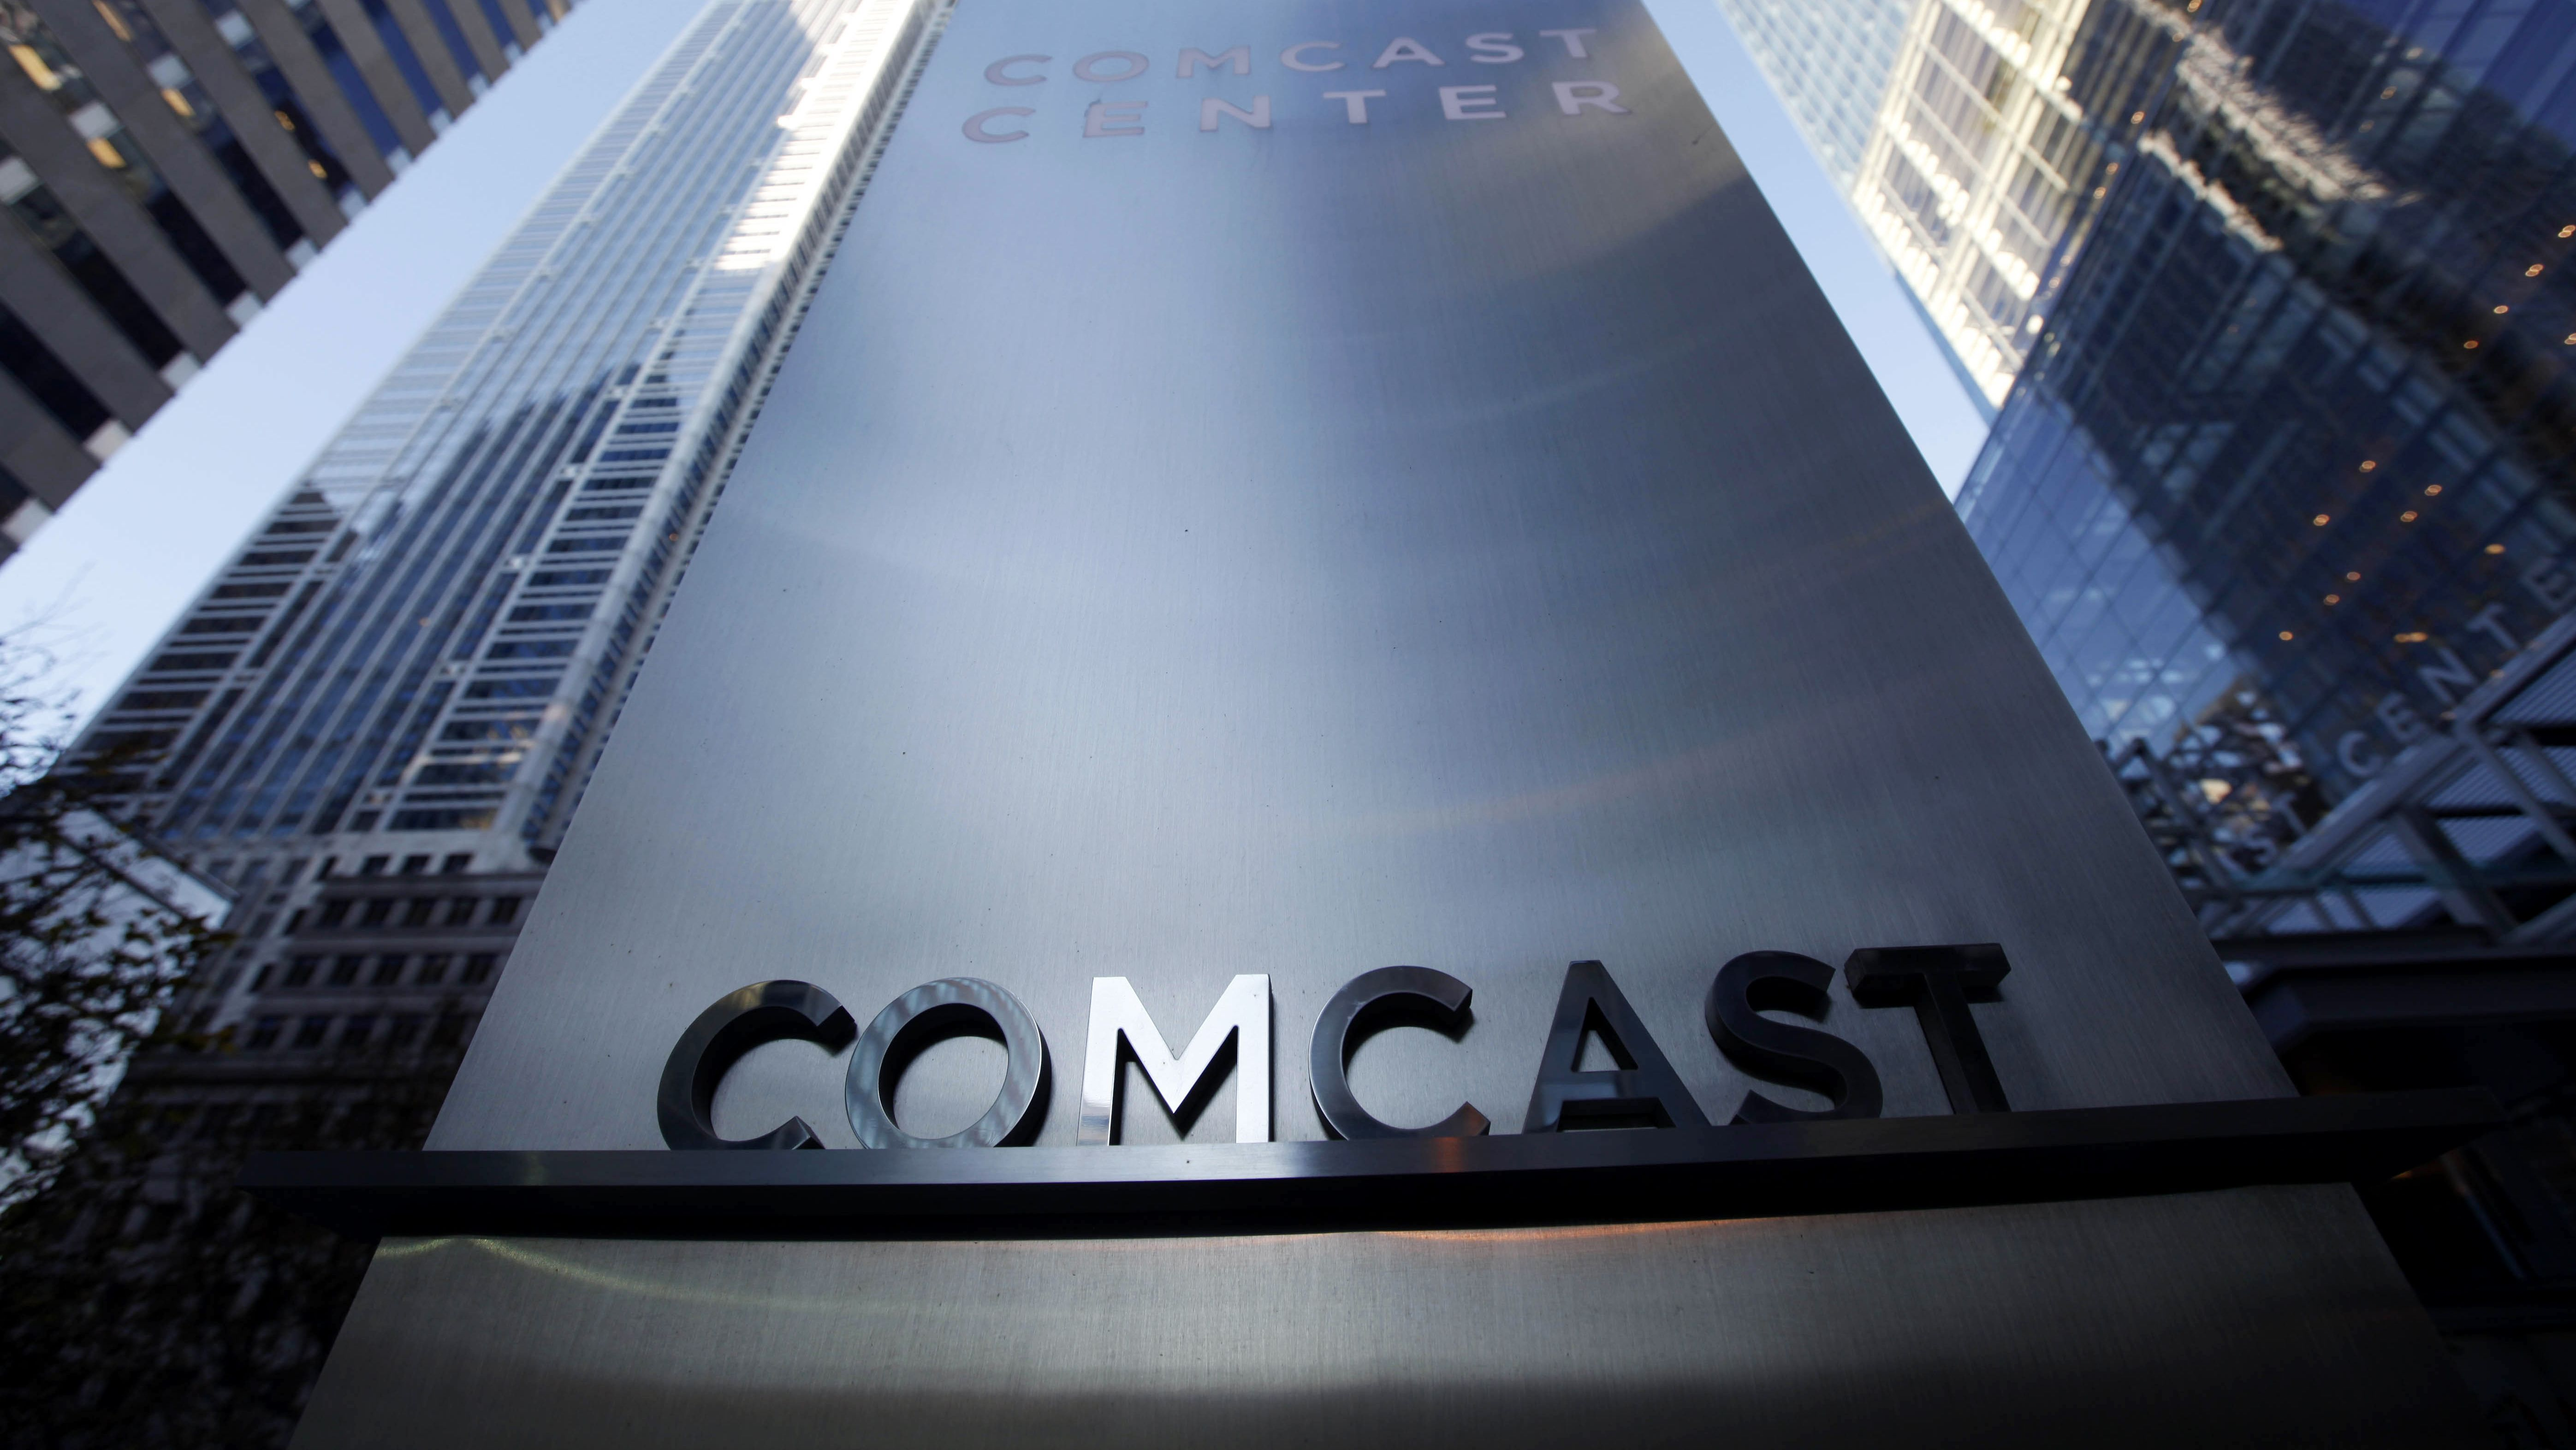 Comcast 'Embarrassed' By The Service Call Making